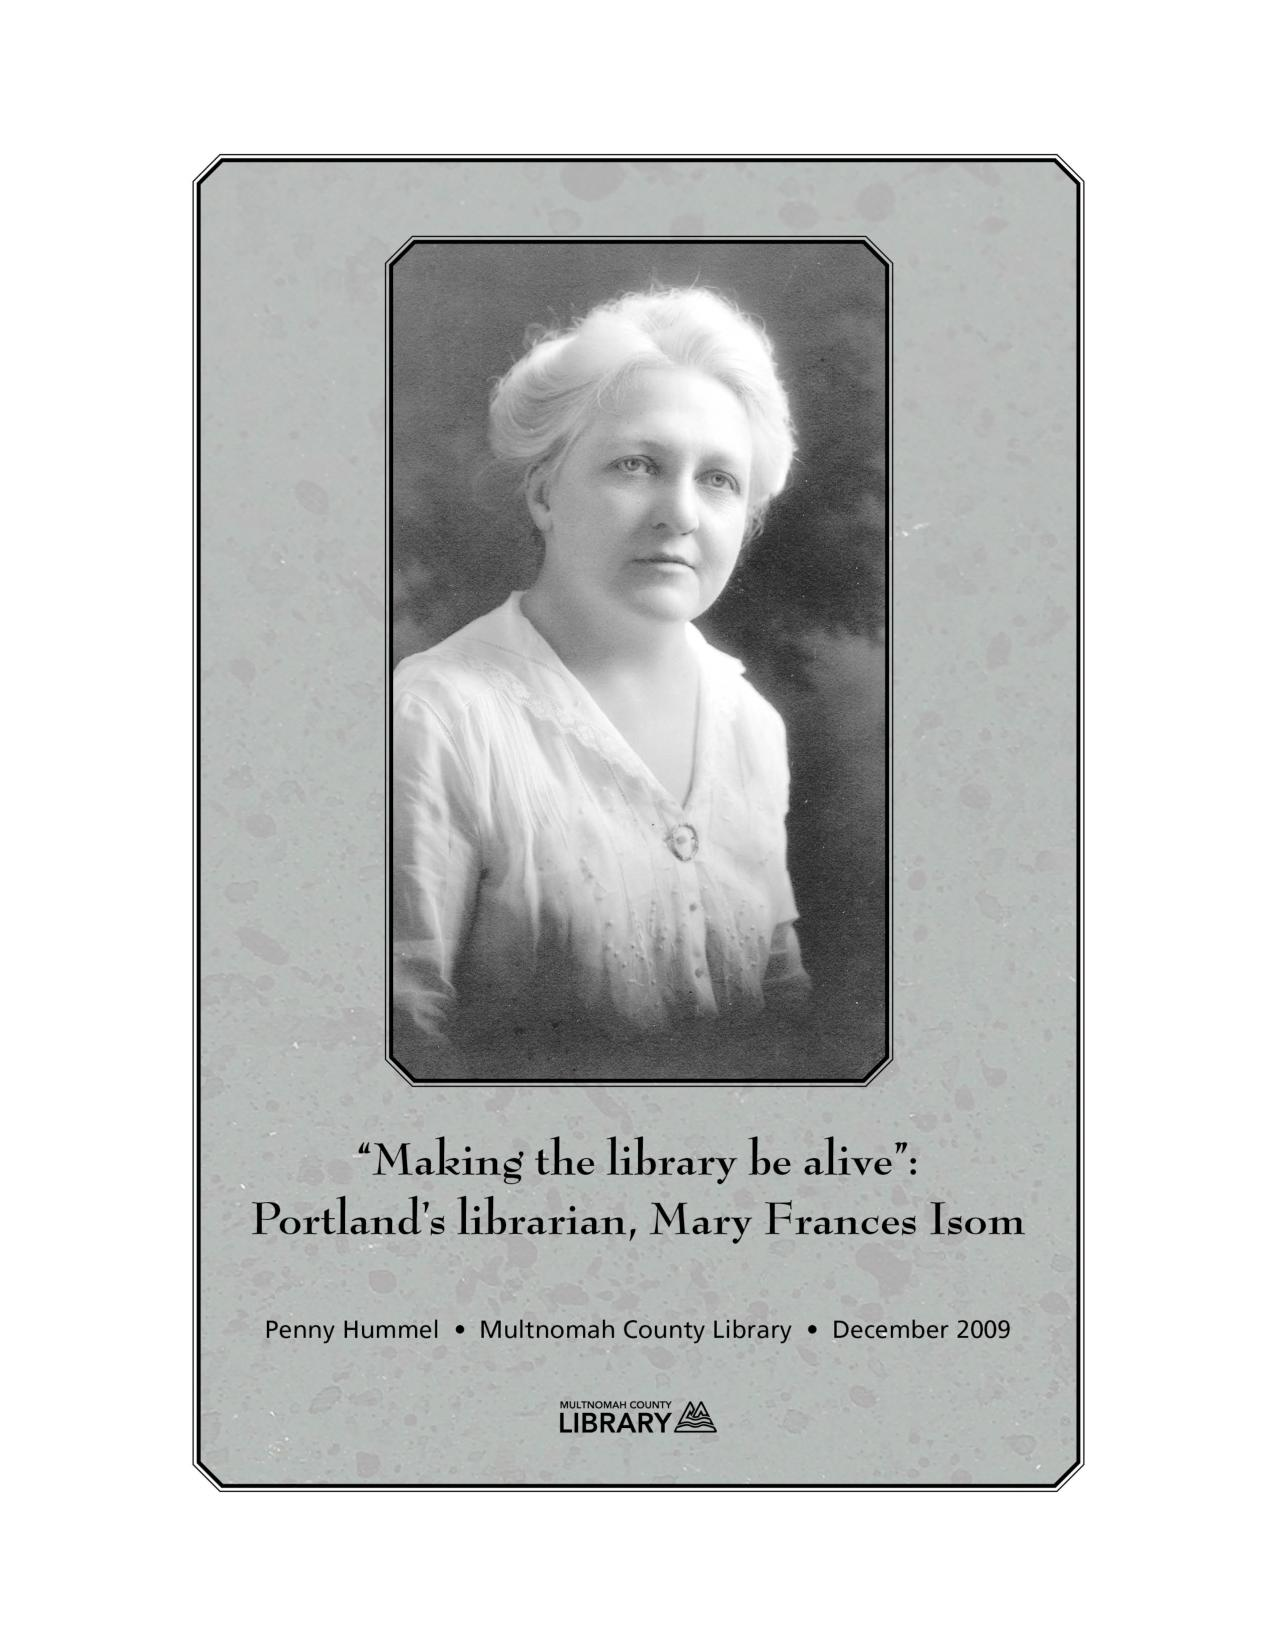 'Making the library be Alive:' Portland's Librarian, Mary Frances Isom (2009) - A profile of the extraordinary life and work of Mary Frances Isom, head librarian of the Library Association of Portland from 1902 - 1920.